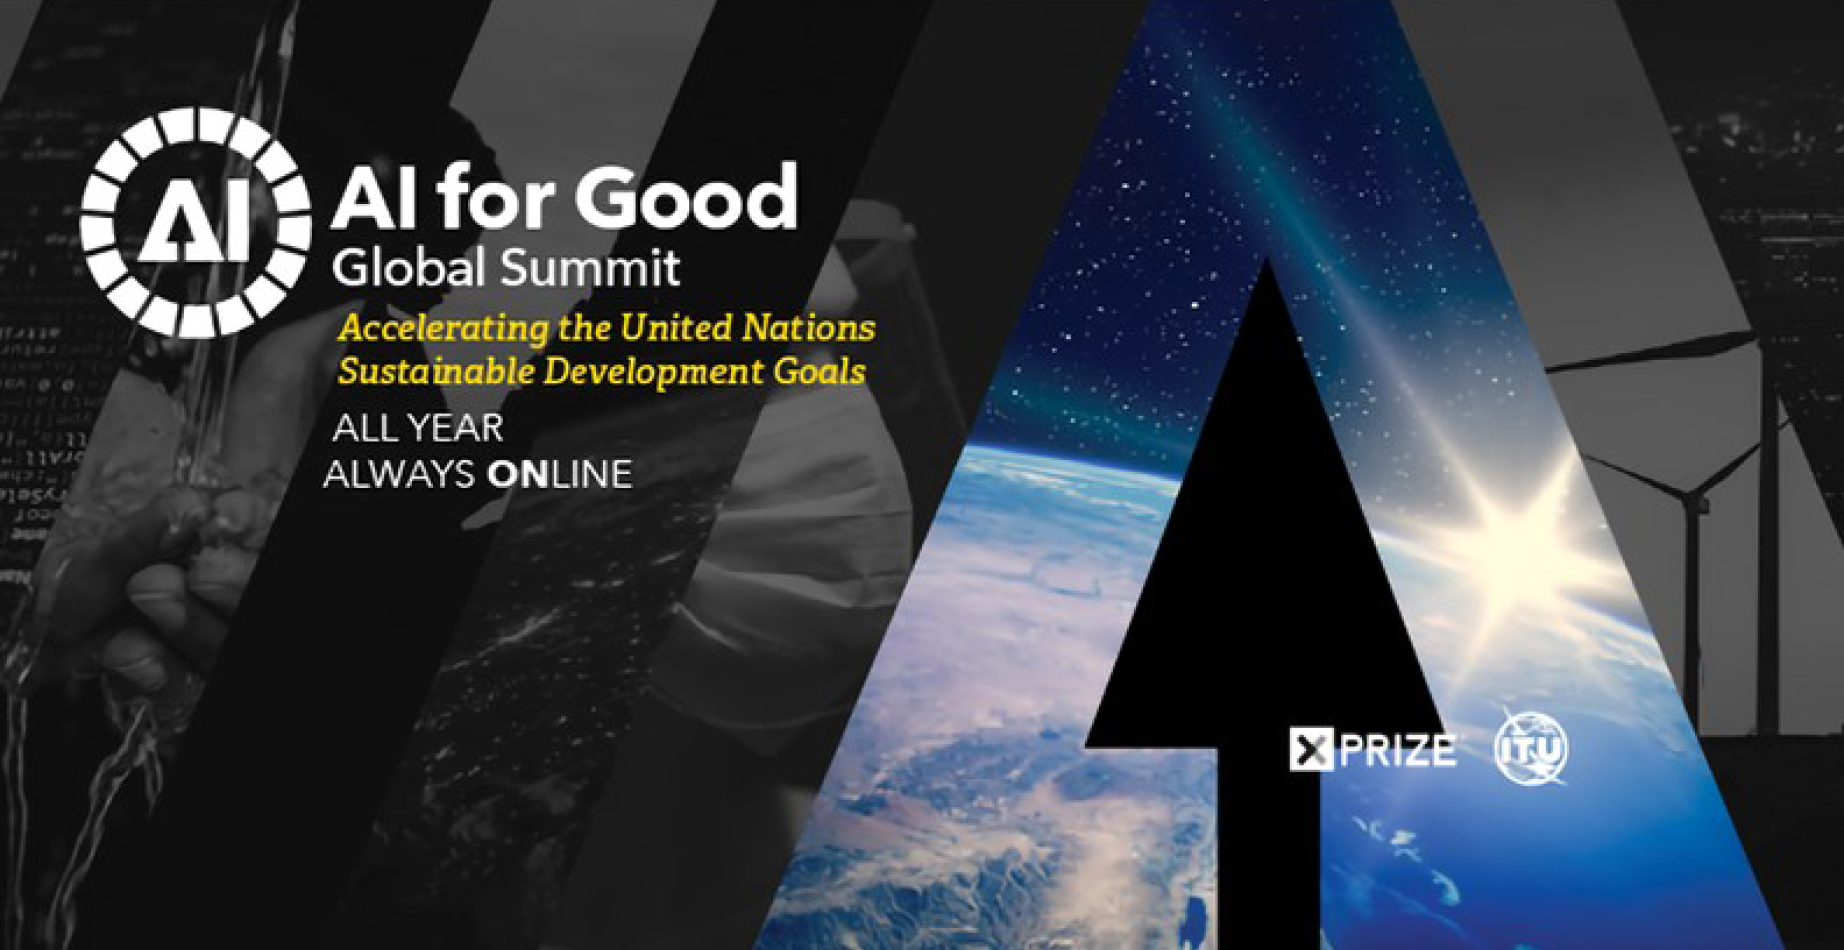 Image: AI for Good, Global Summit